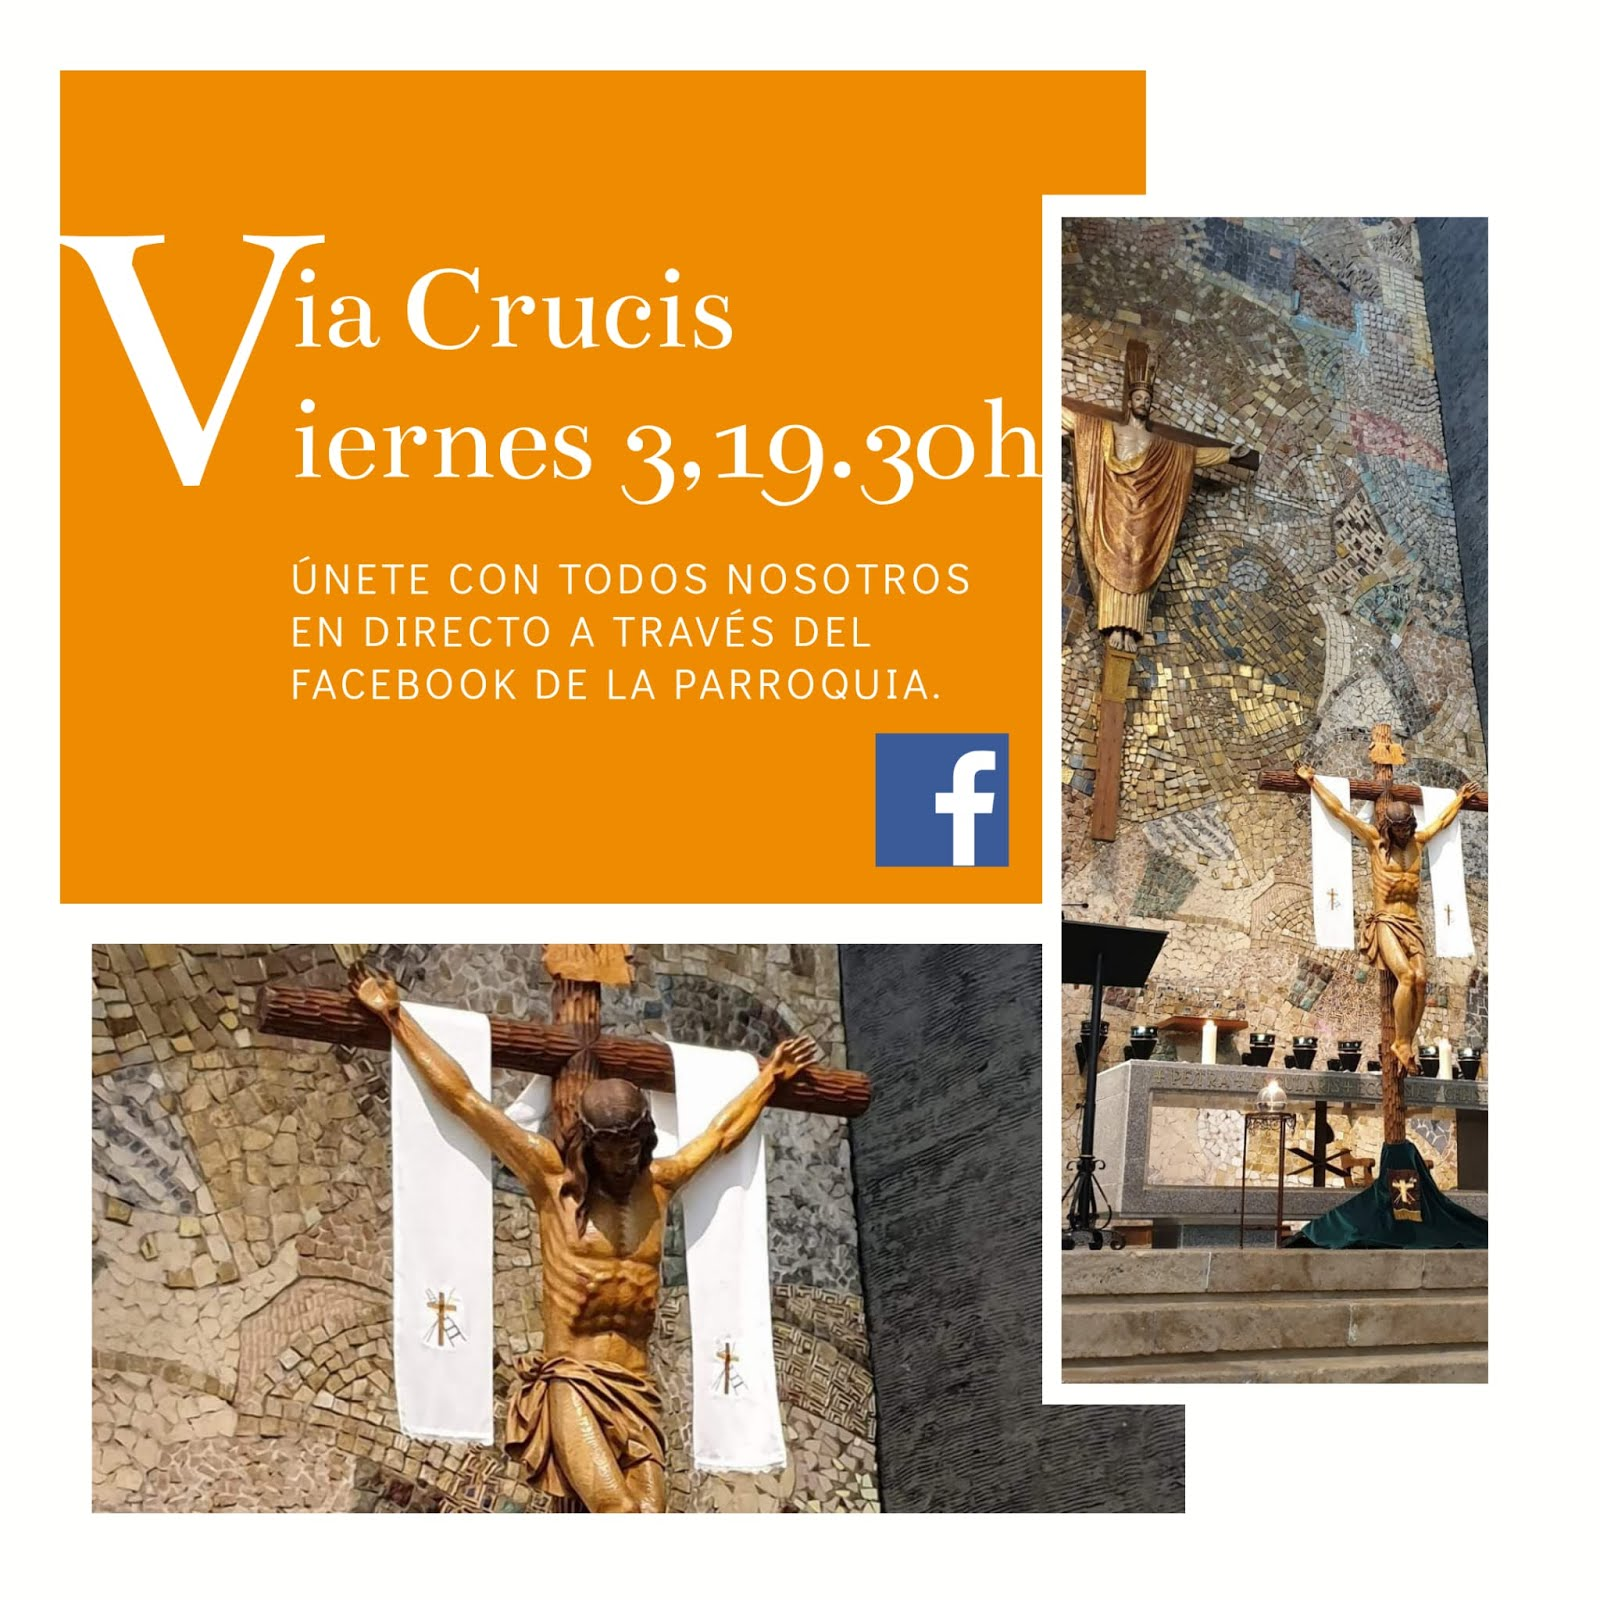 Retransmisión del Via Crucis